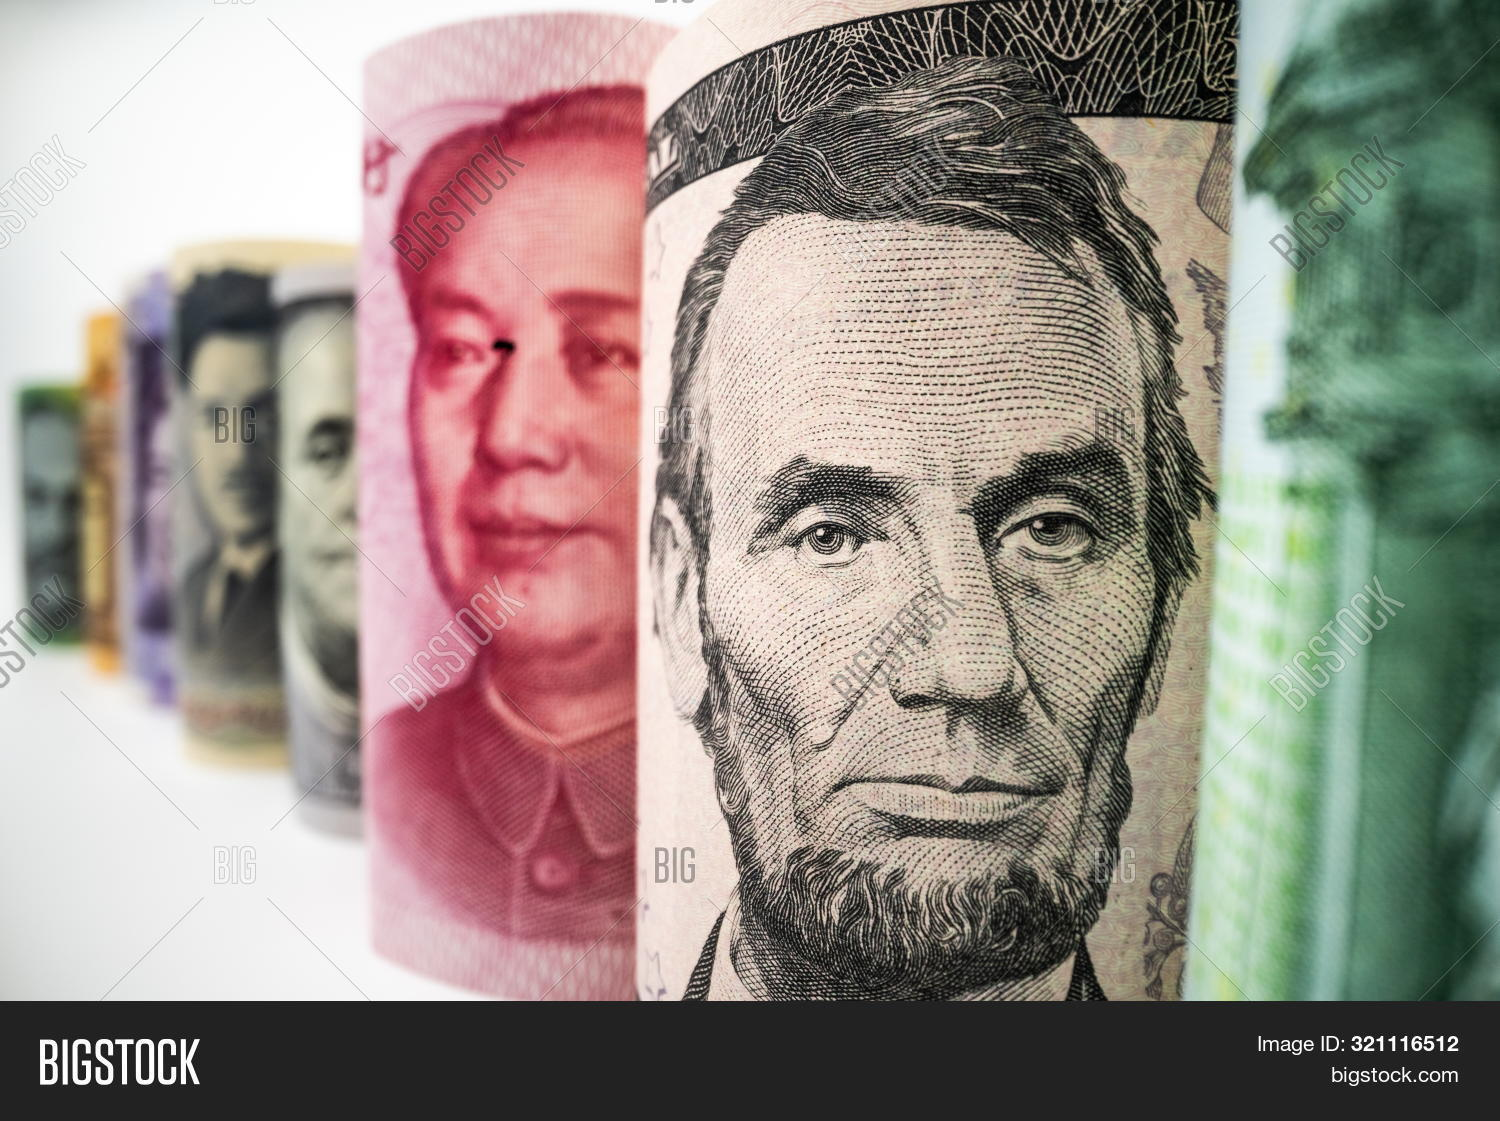 International Money Image Photo Free